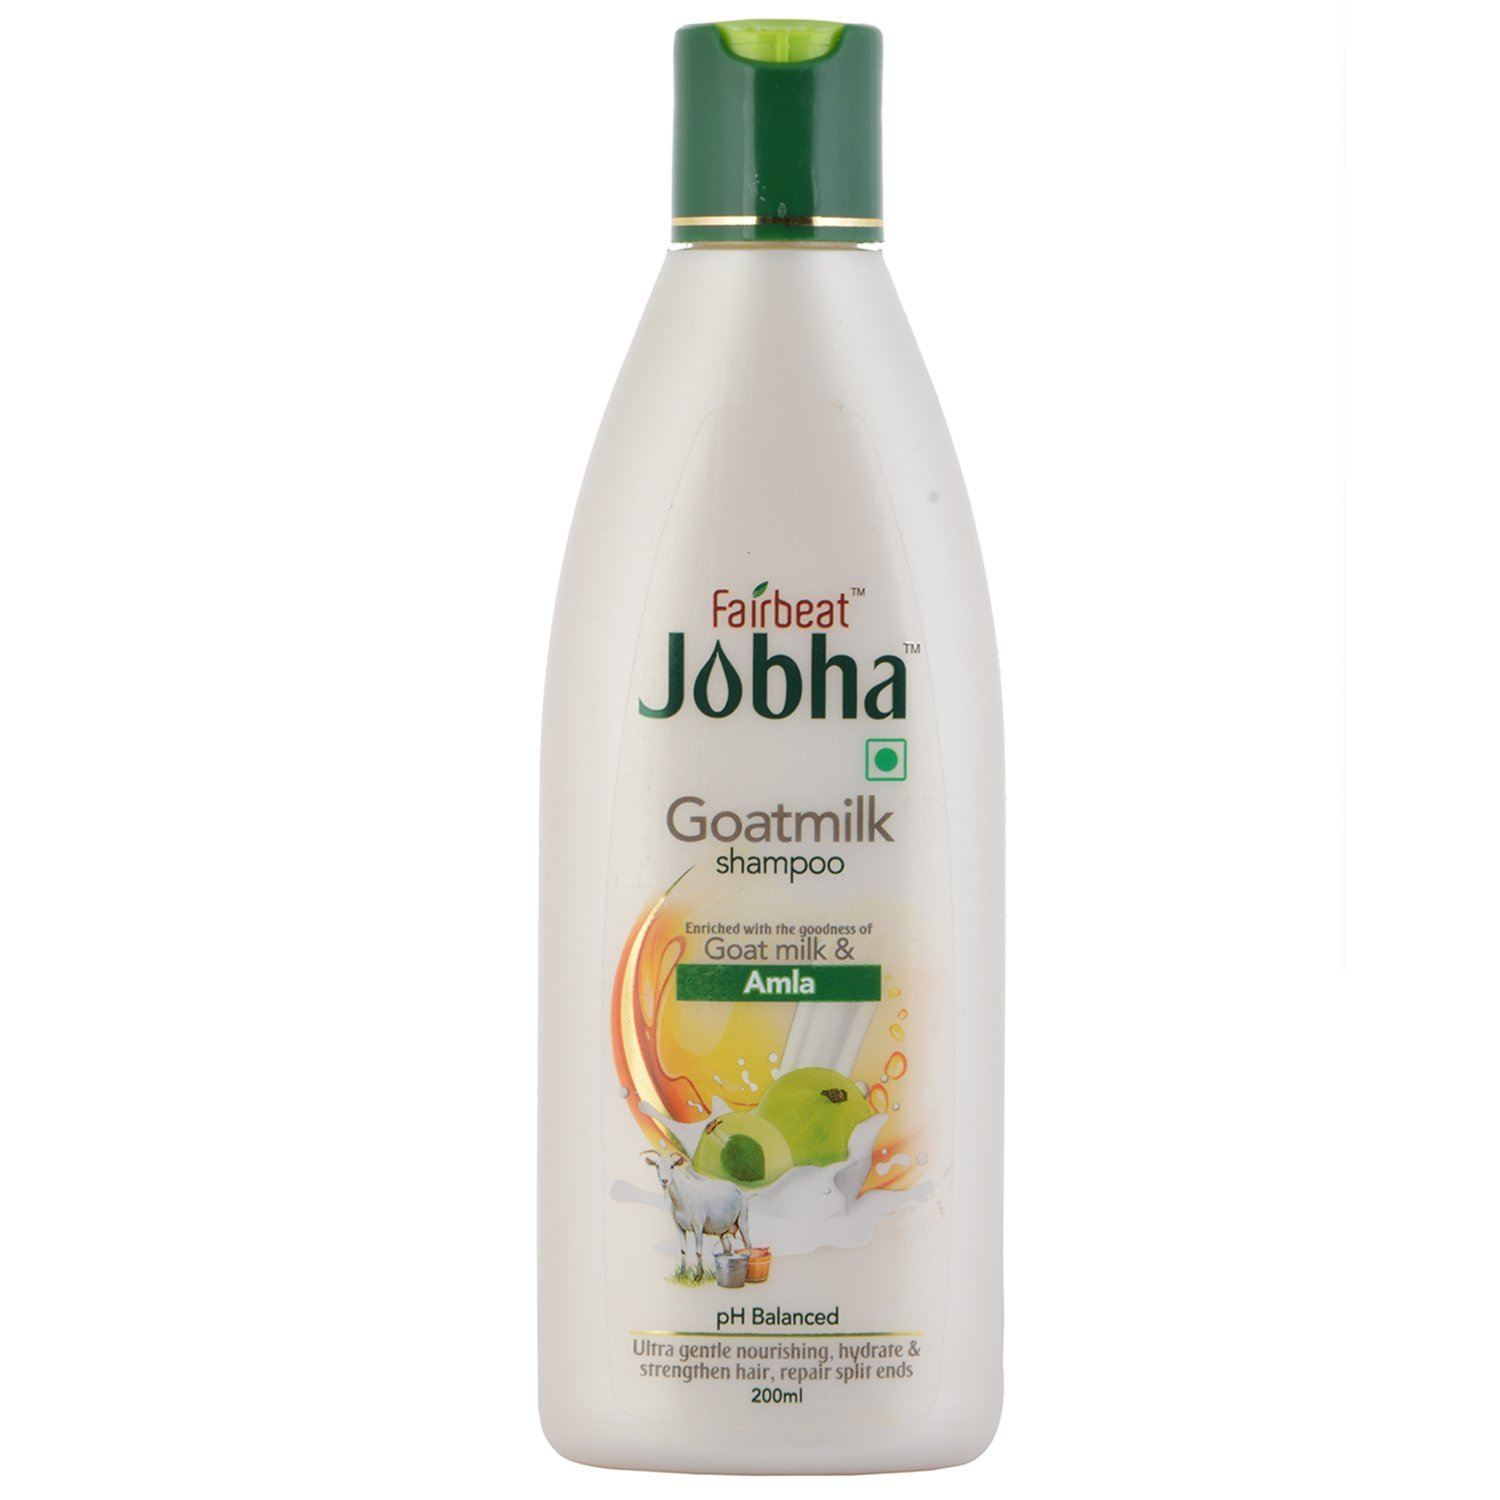 Fairbeat Jobha Goatmilk 100ml get best offers deals free and coupons online at buythevalue.in